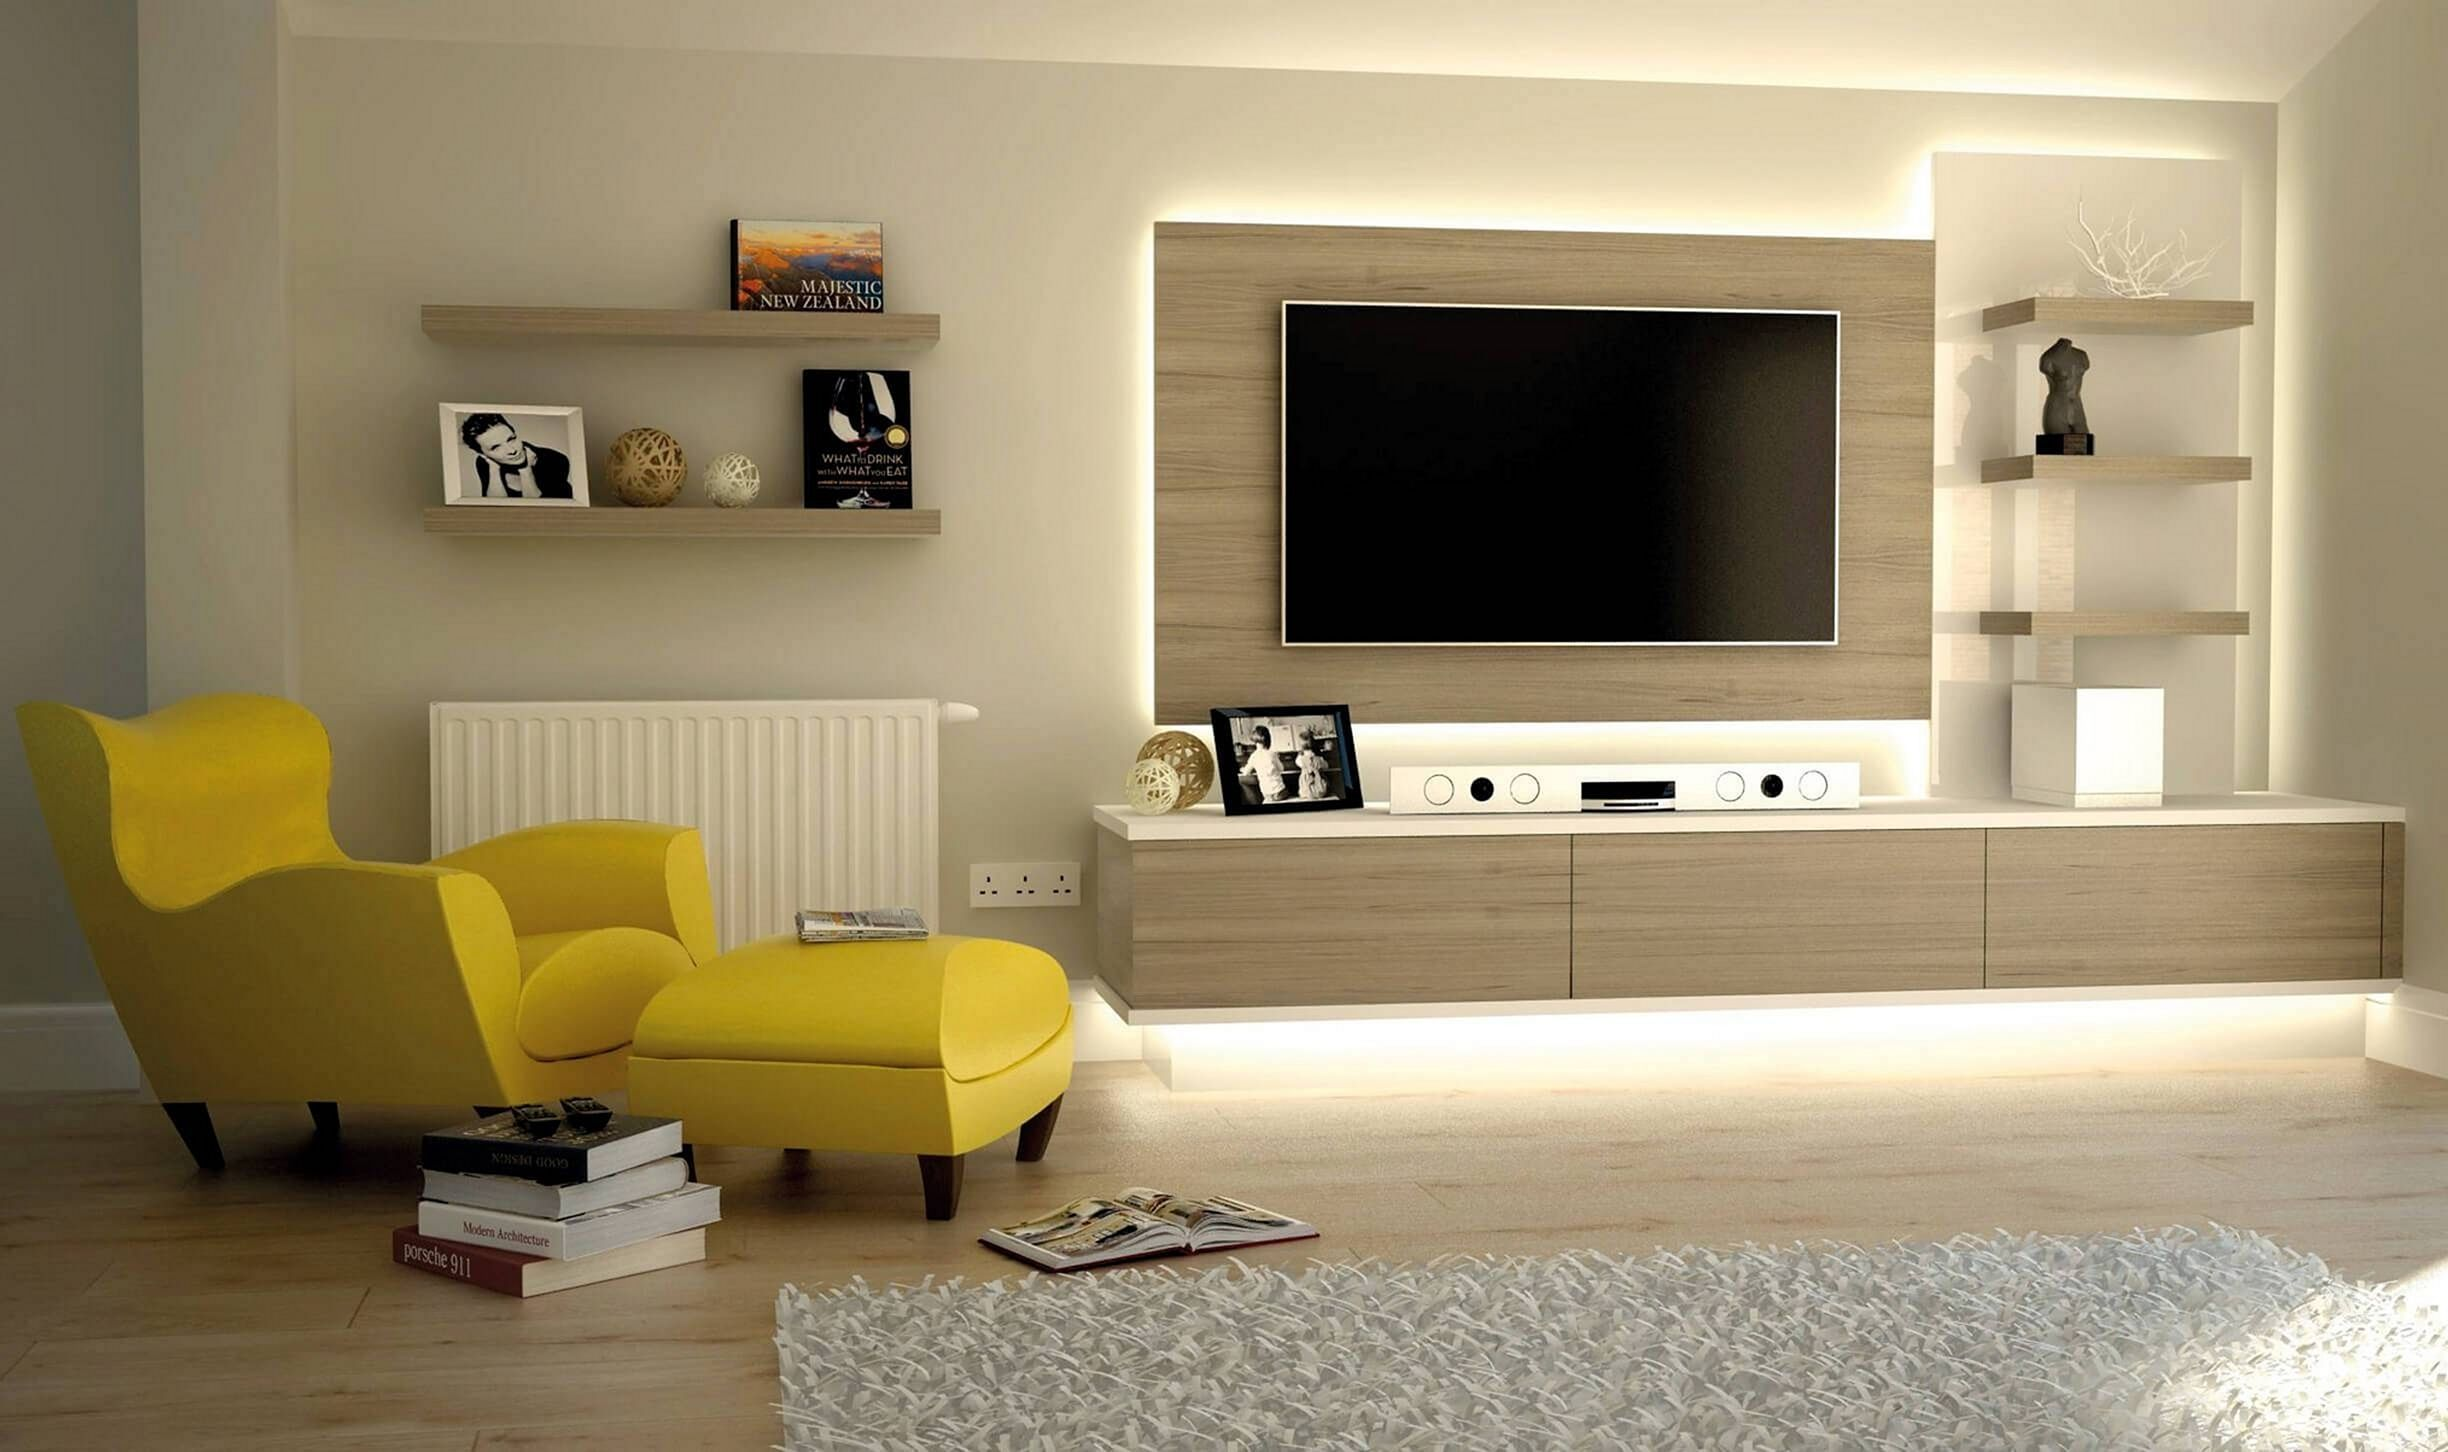 12 Best Tv Wall Unit Ideas For Stunning Living Room Design With Images Bedroom Tv Unit Design Living Room Wall Units Tv Cabinet Design